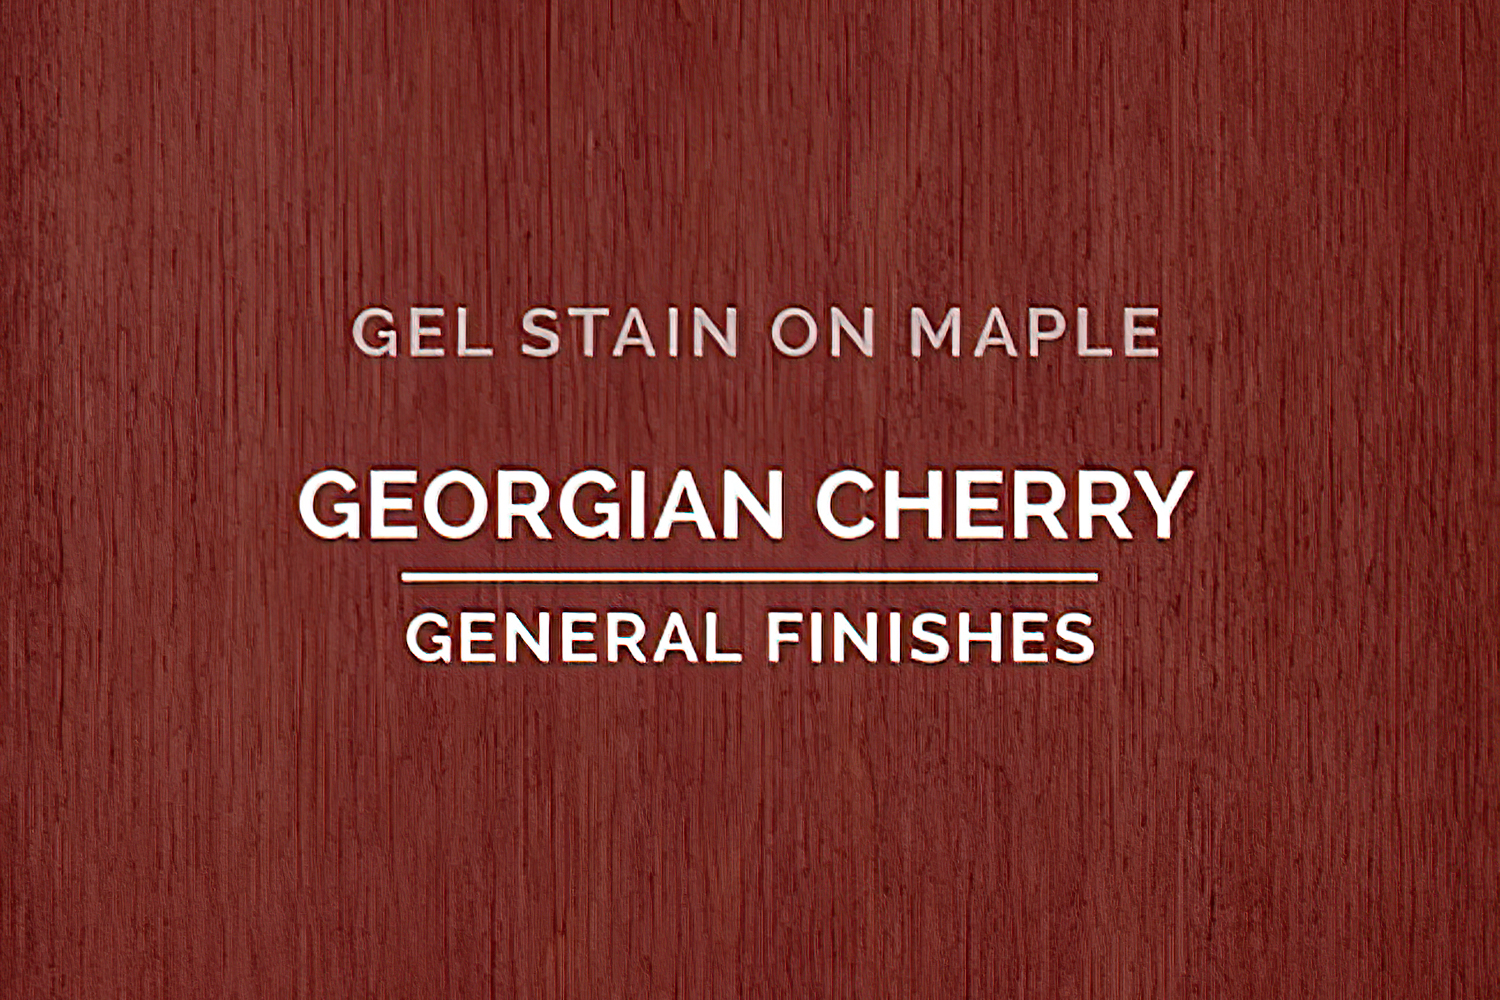 Color Chip Gel Stain Georgian Cherry On Maple General Finishes Copy